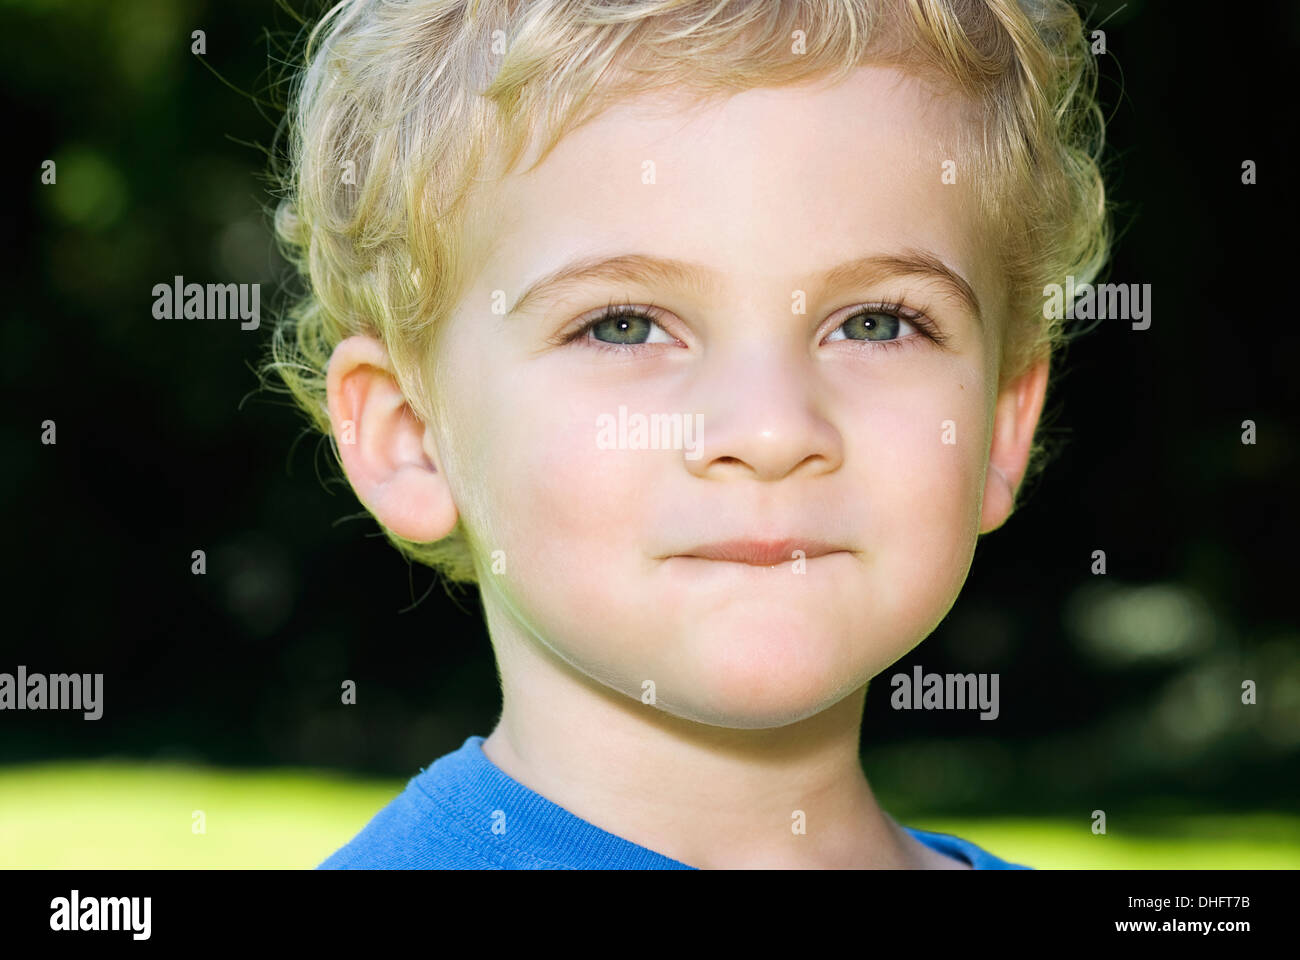 a portrait of a 4 year old boy Stock Photo